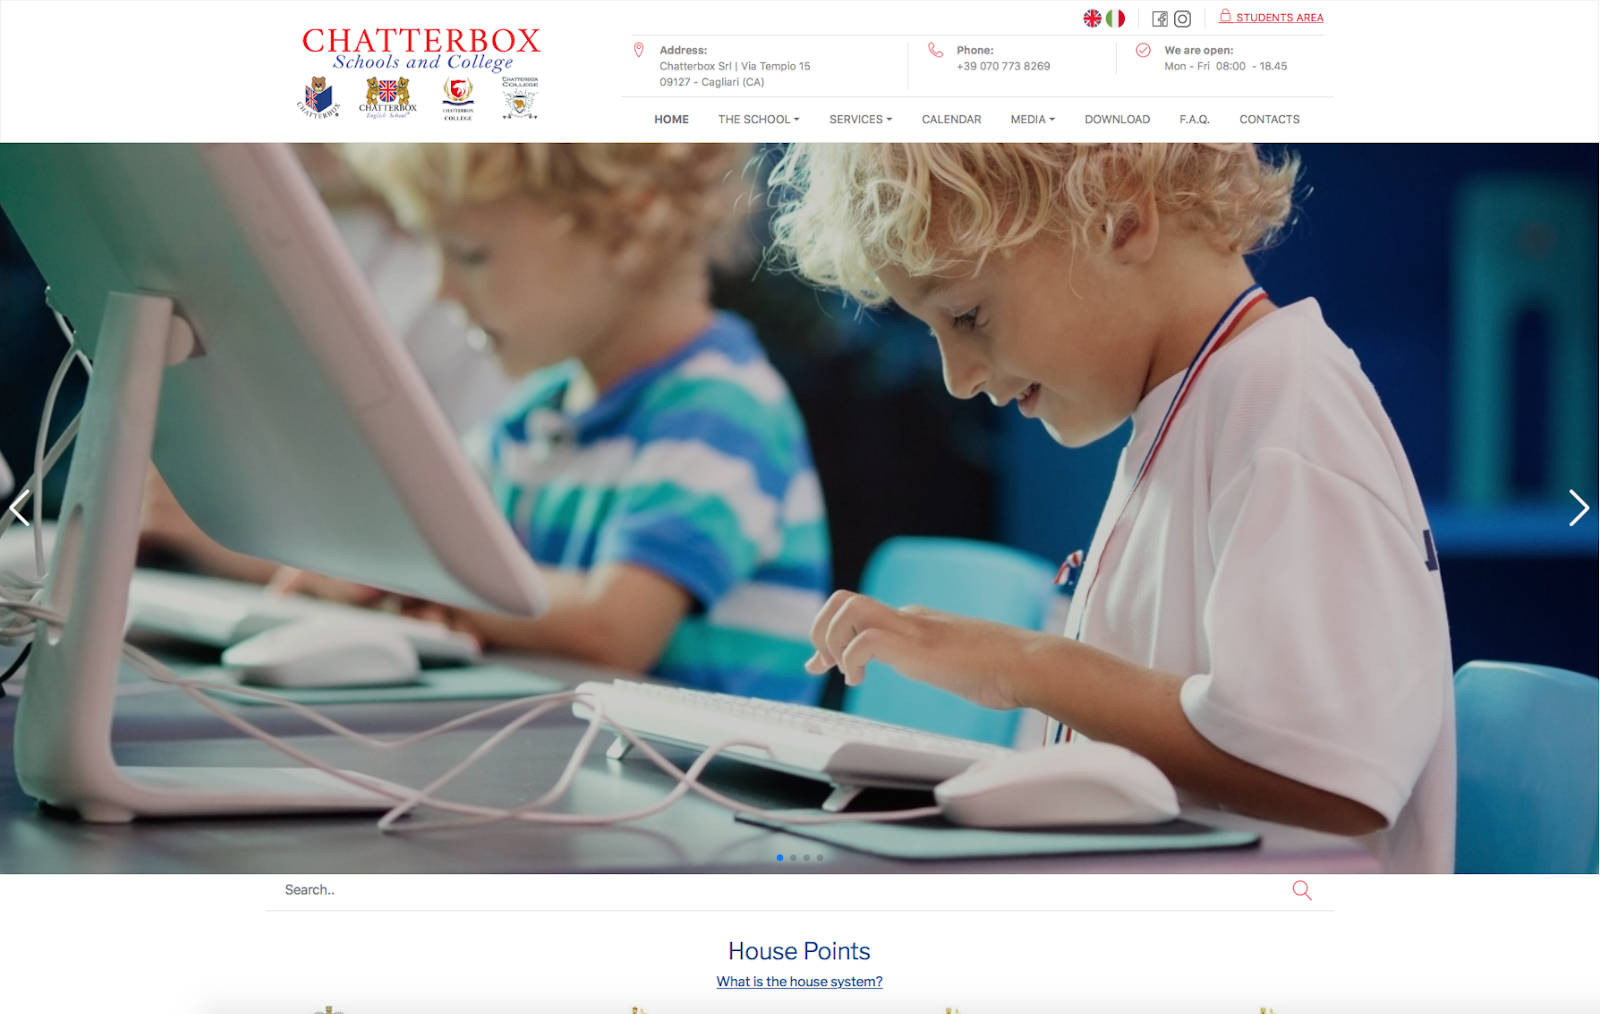 chatterbox schools and college homepage